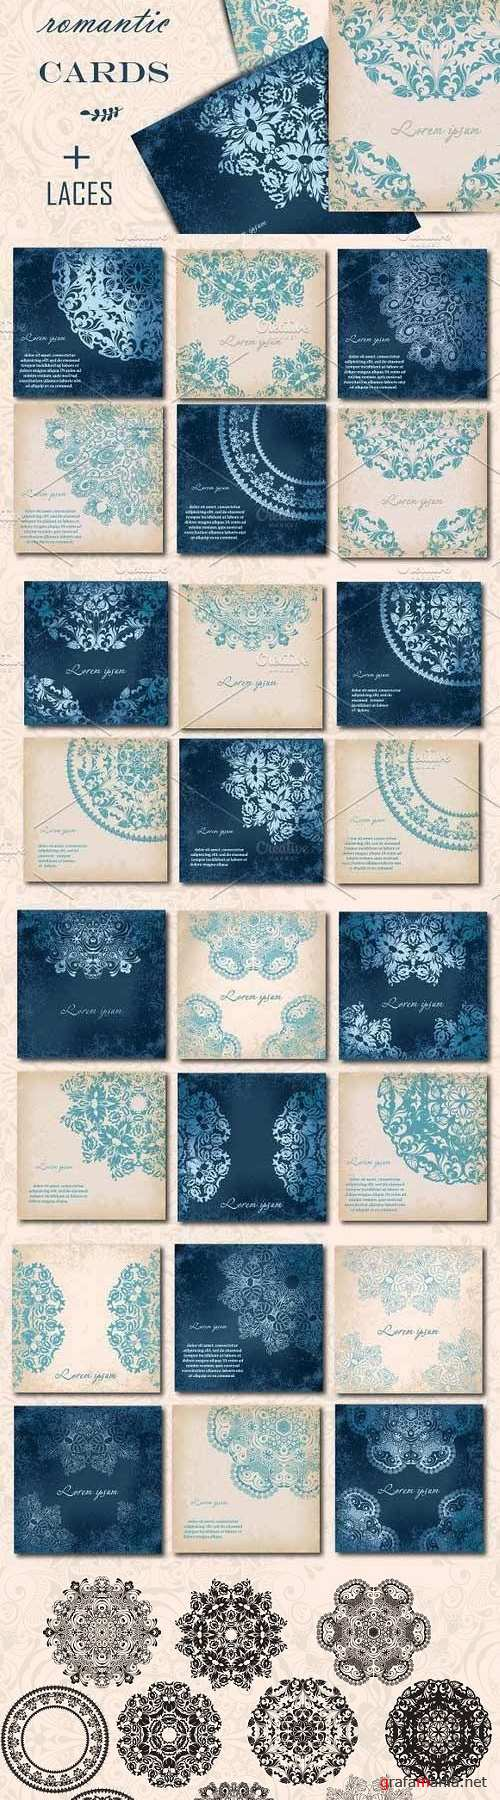 Rownd Lace Cards 553296